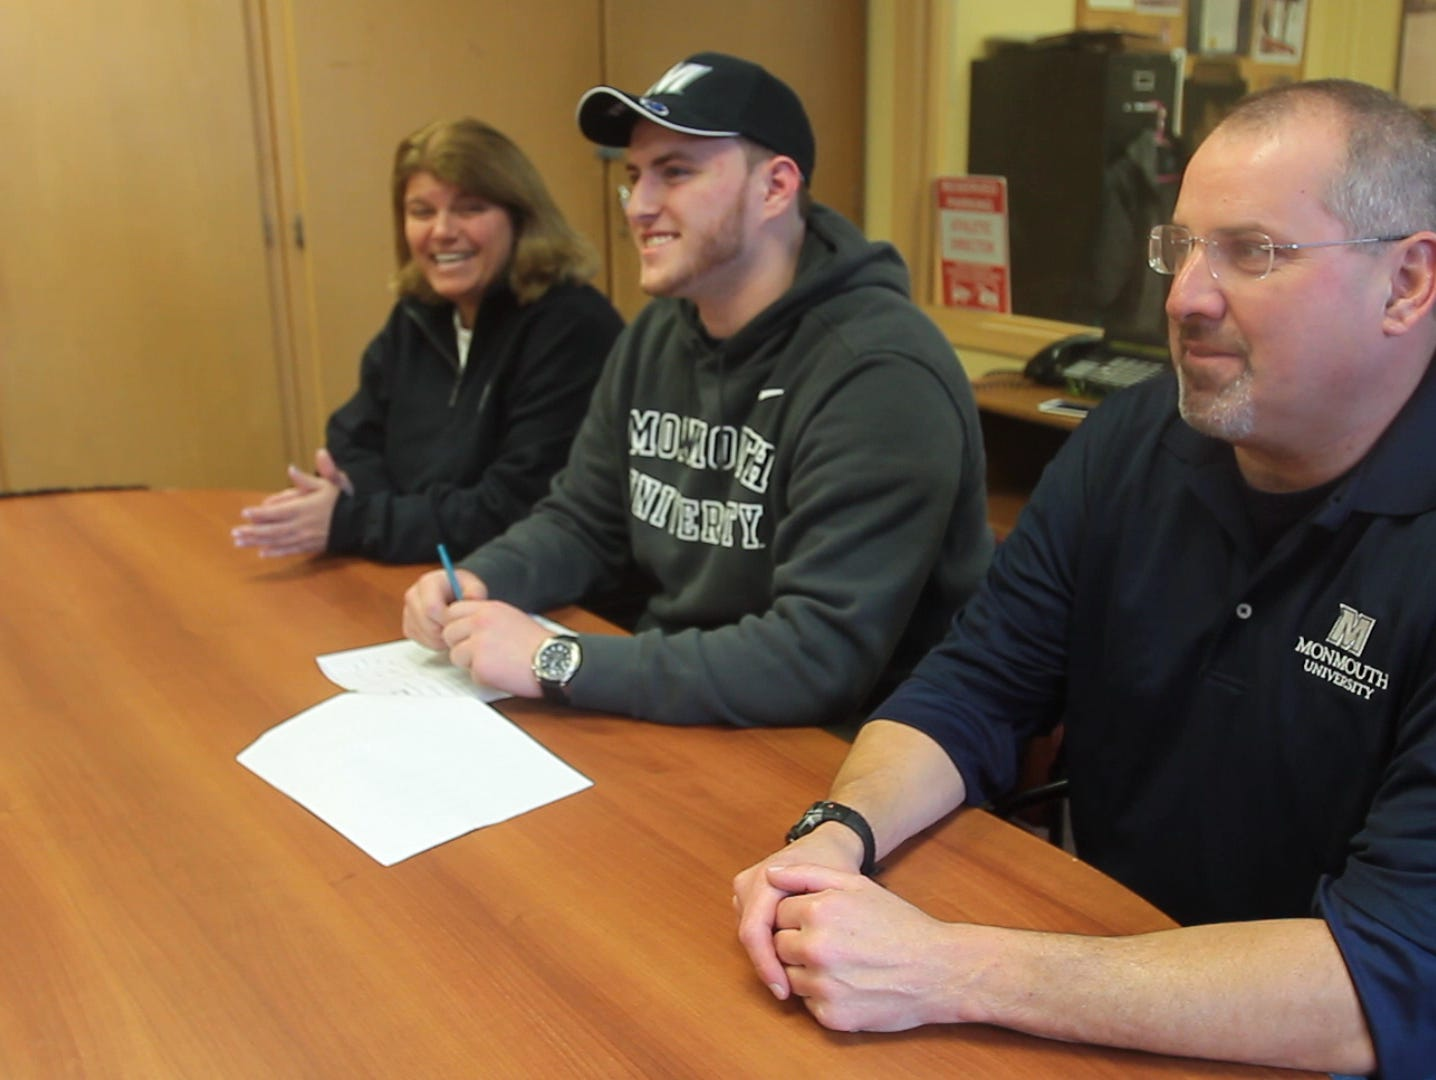 Brian Syracuse signed on to Monmouth University on Feb. 3, 2016 at Nanuet Senior High School.